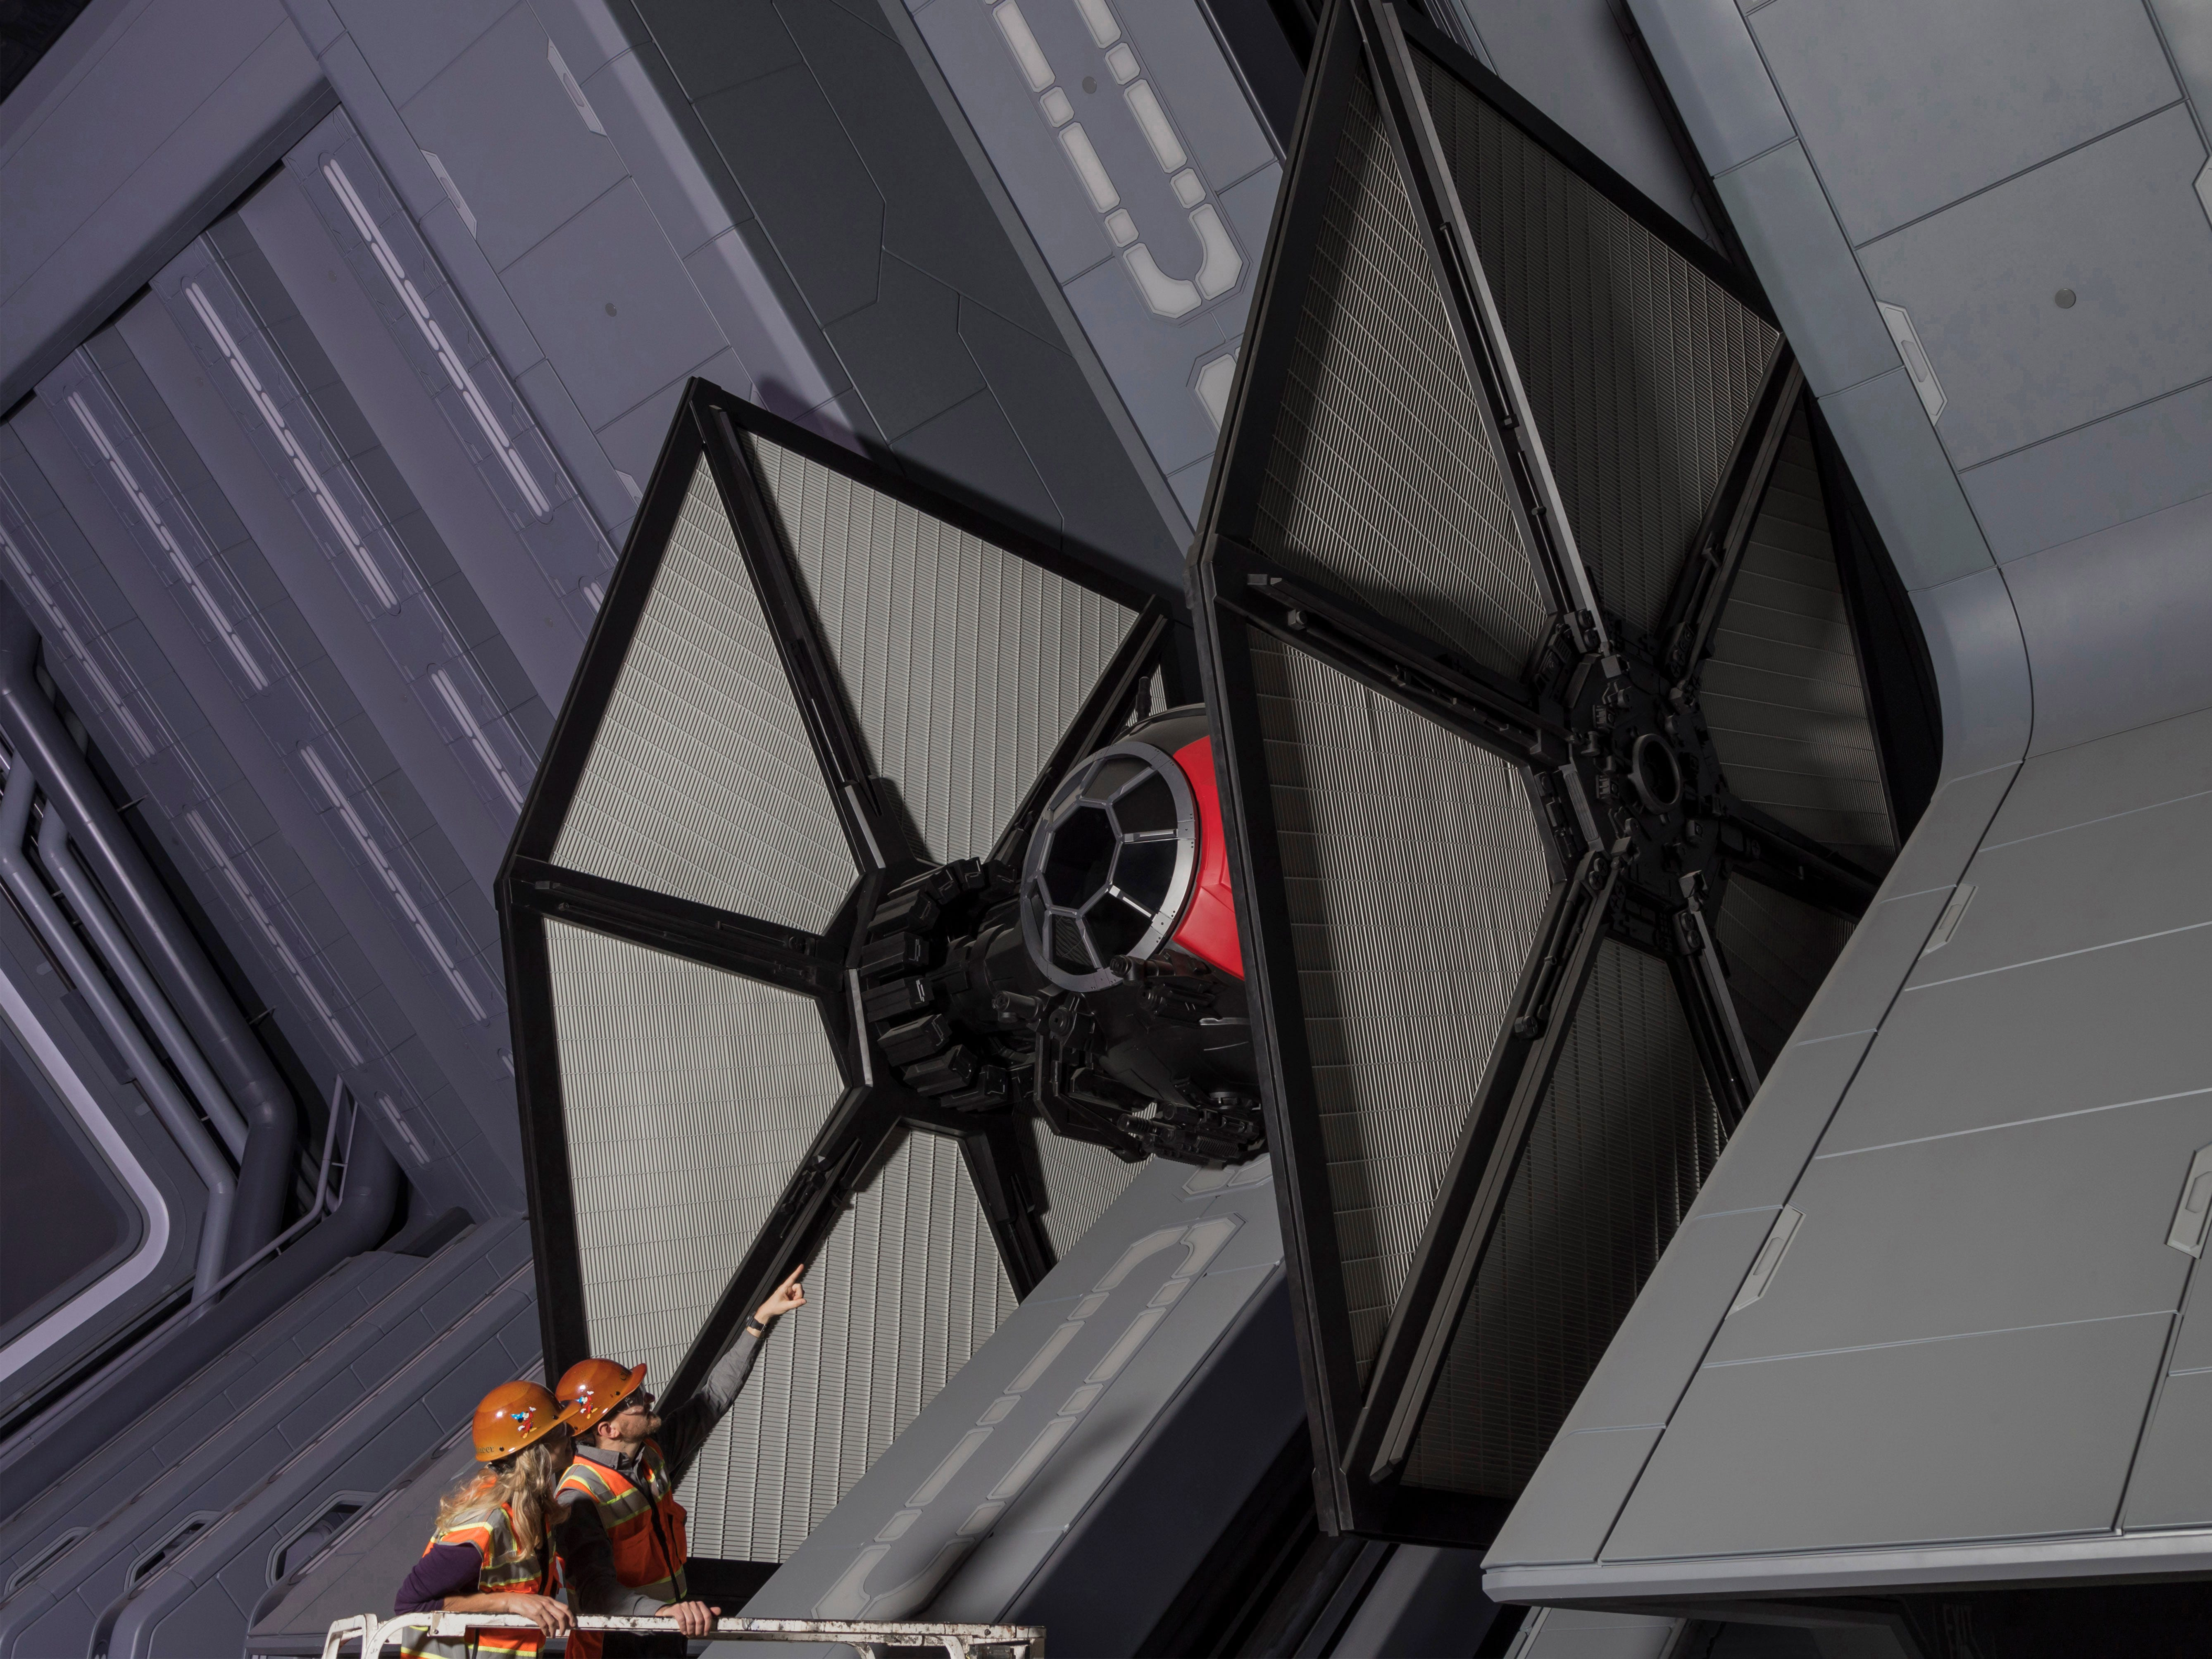 Disney Imagineers view a TIE fighter as they work on Star Wars: Rise of the Resistance at Star Wars: Galaxy's Edge, opening in summer 2019 at Disneyland Resort in California and fall 2019 at Walt Disney World Resort in Florida.